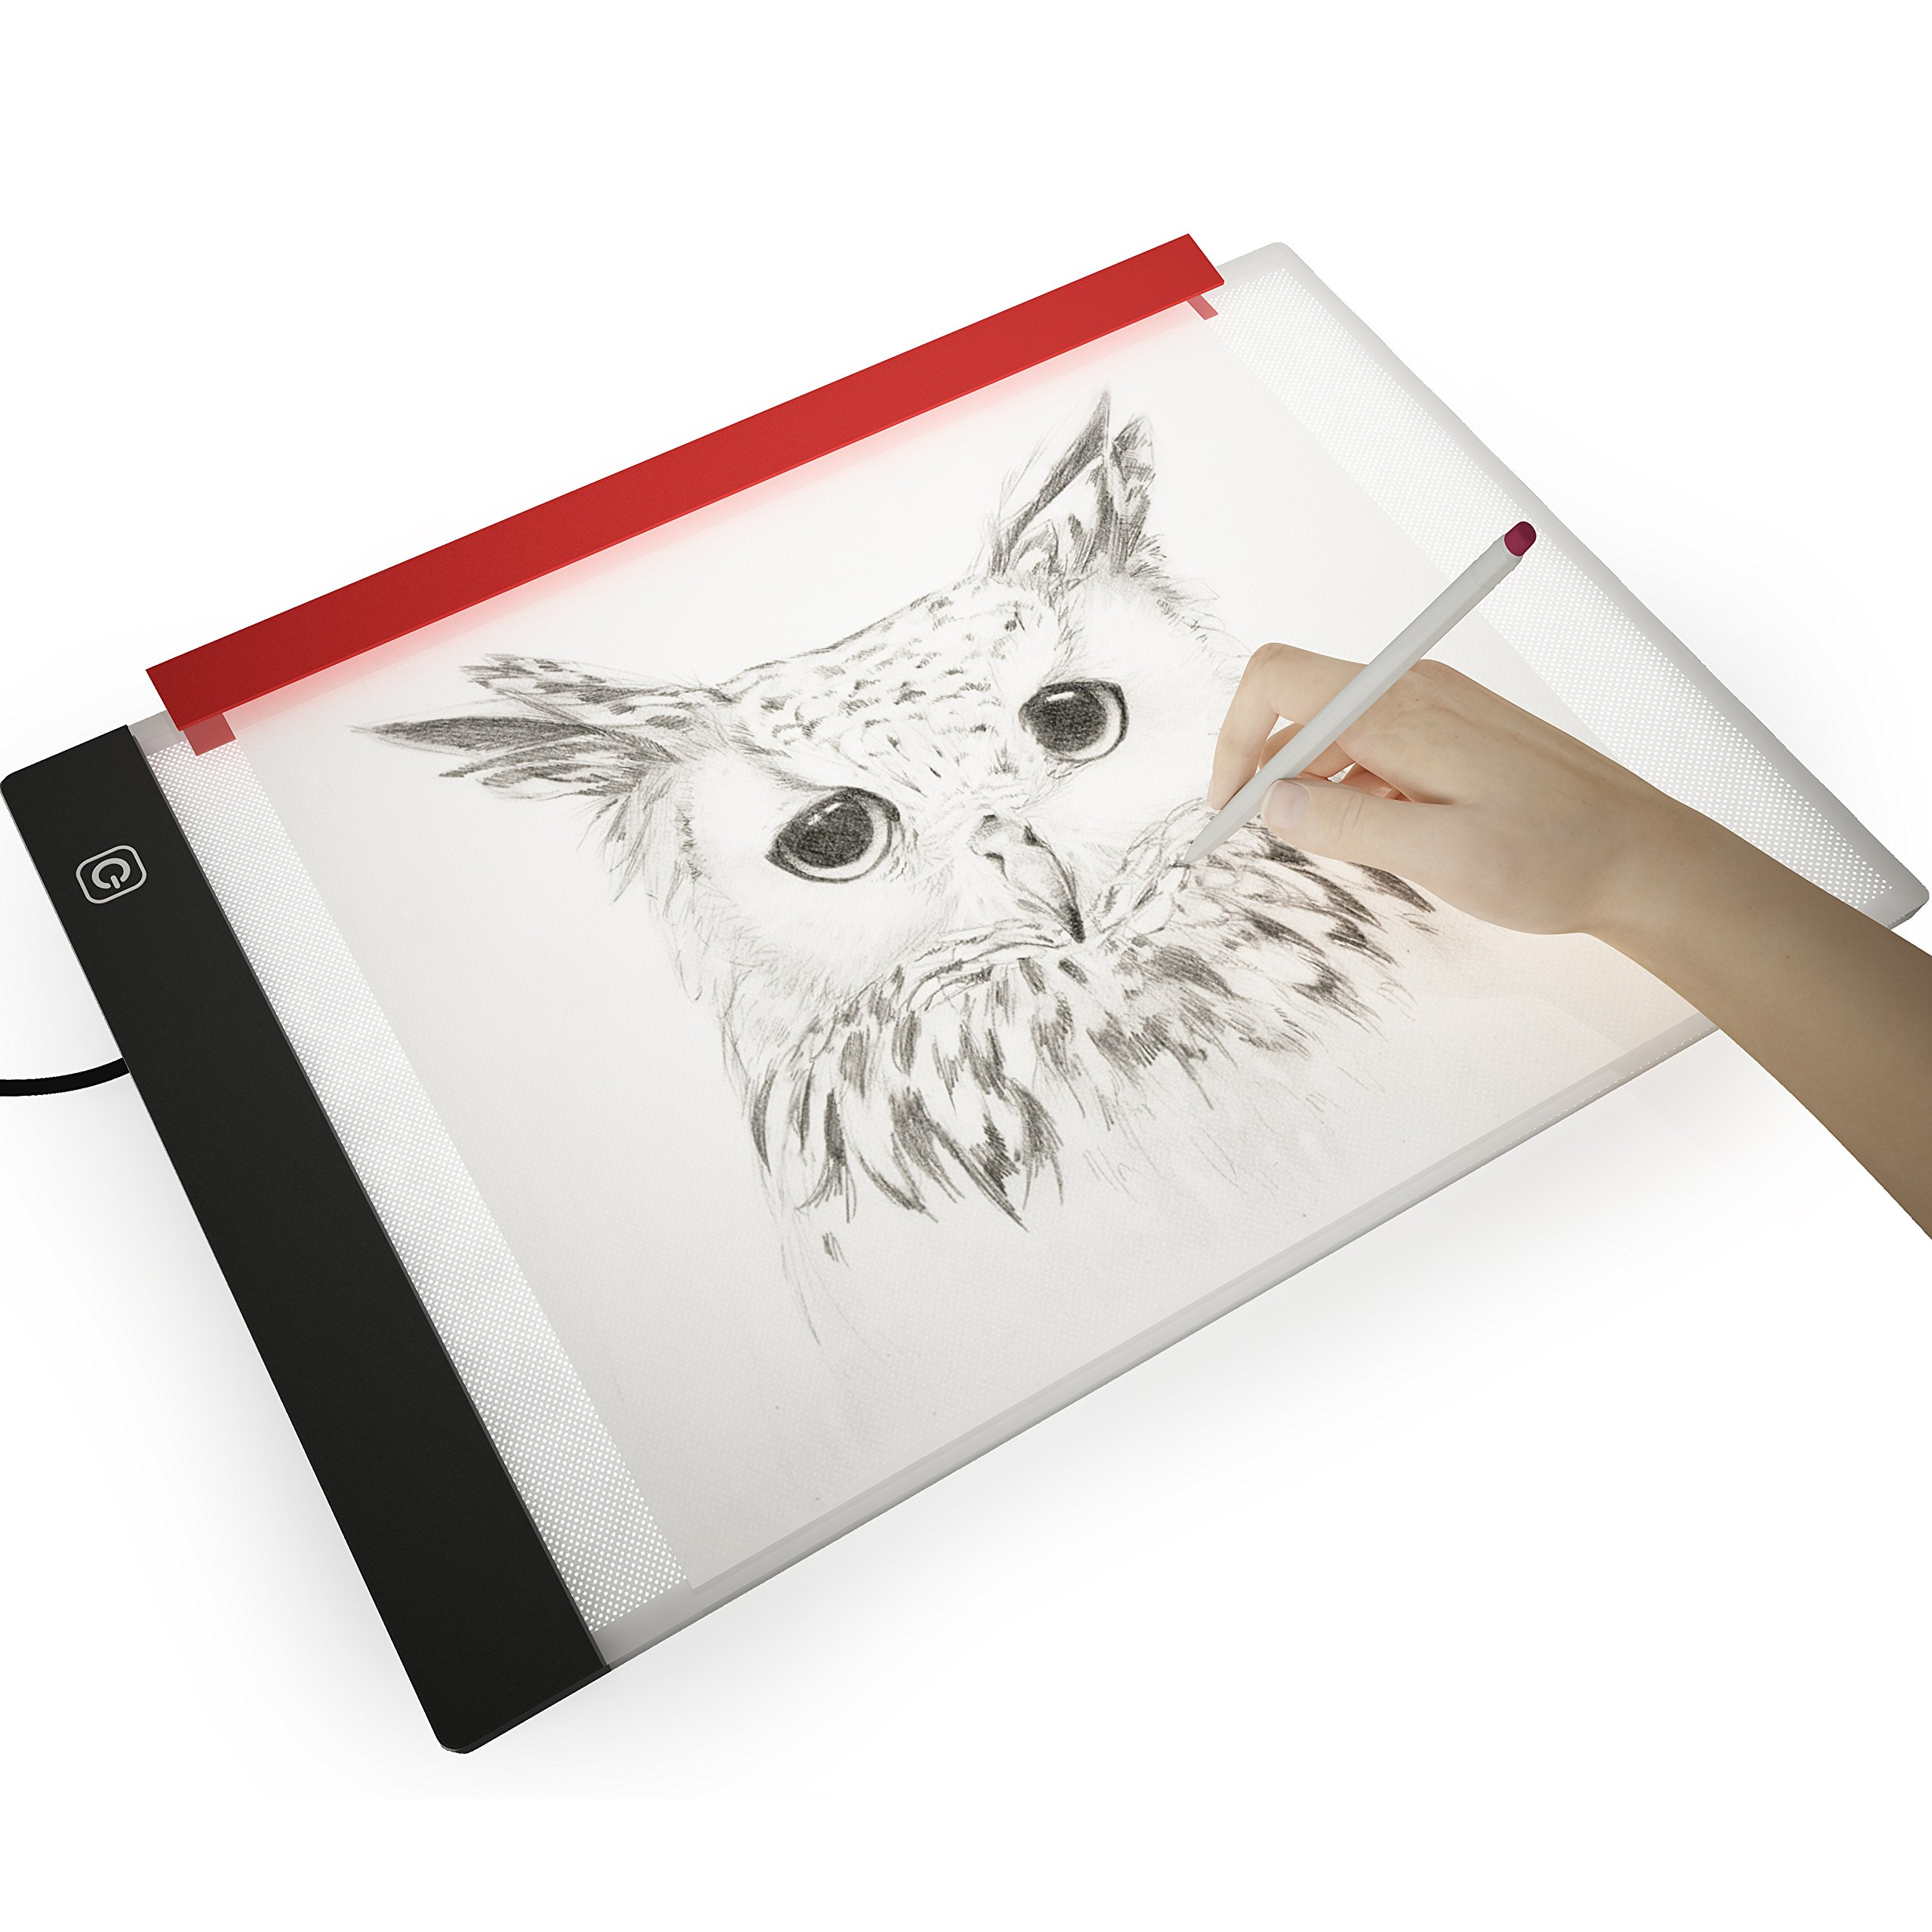 Picture/Perfect Best Light Box for Tracing ~ Ultra Thin Portable LED Light Pad with Advanced Filter to Prevent Eye Fatigue, Plus Free Paper Holder Clamp, A4 9''x13'' Table with Hi-Mid-Low Brightness